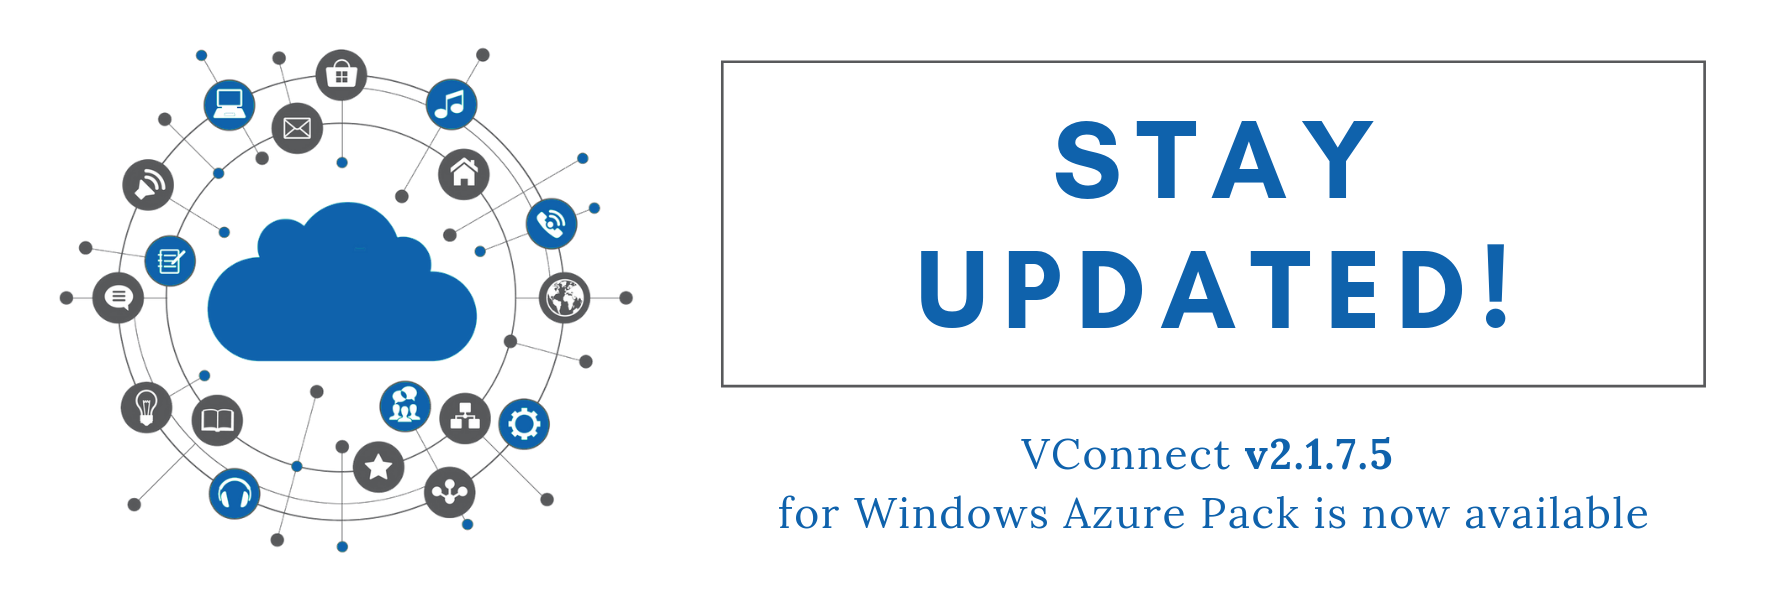 VConnect v2.1.7.5 for Windows Azure Pack